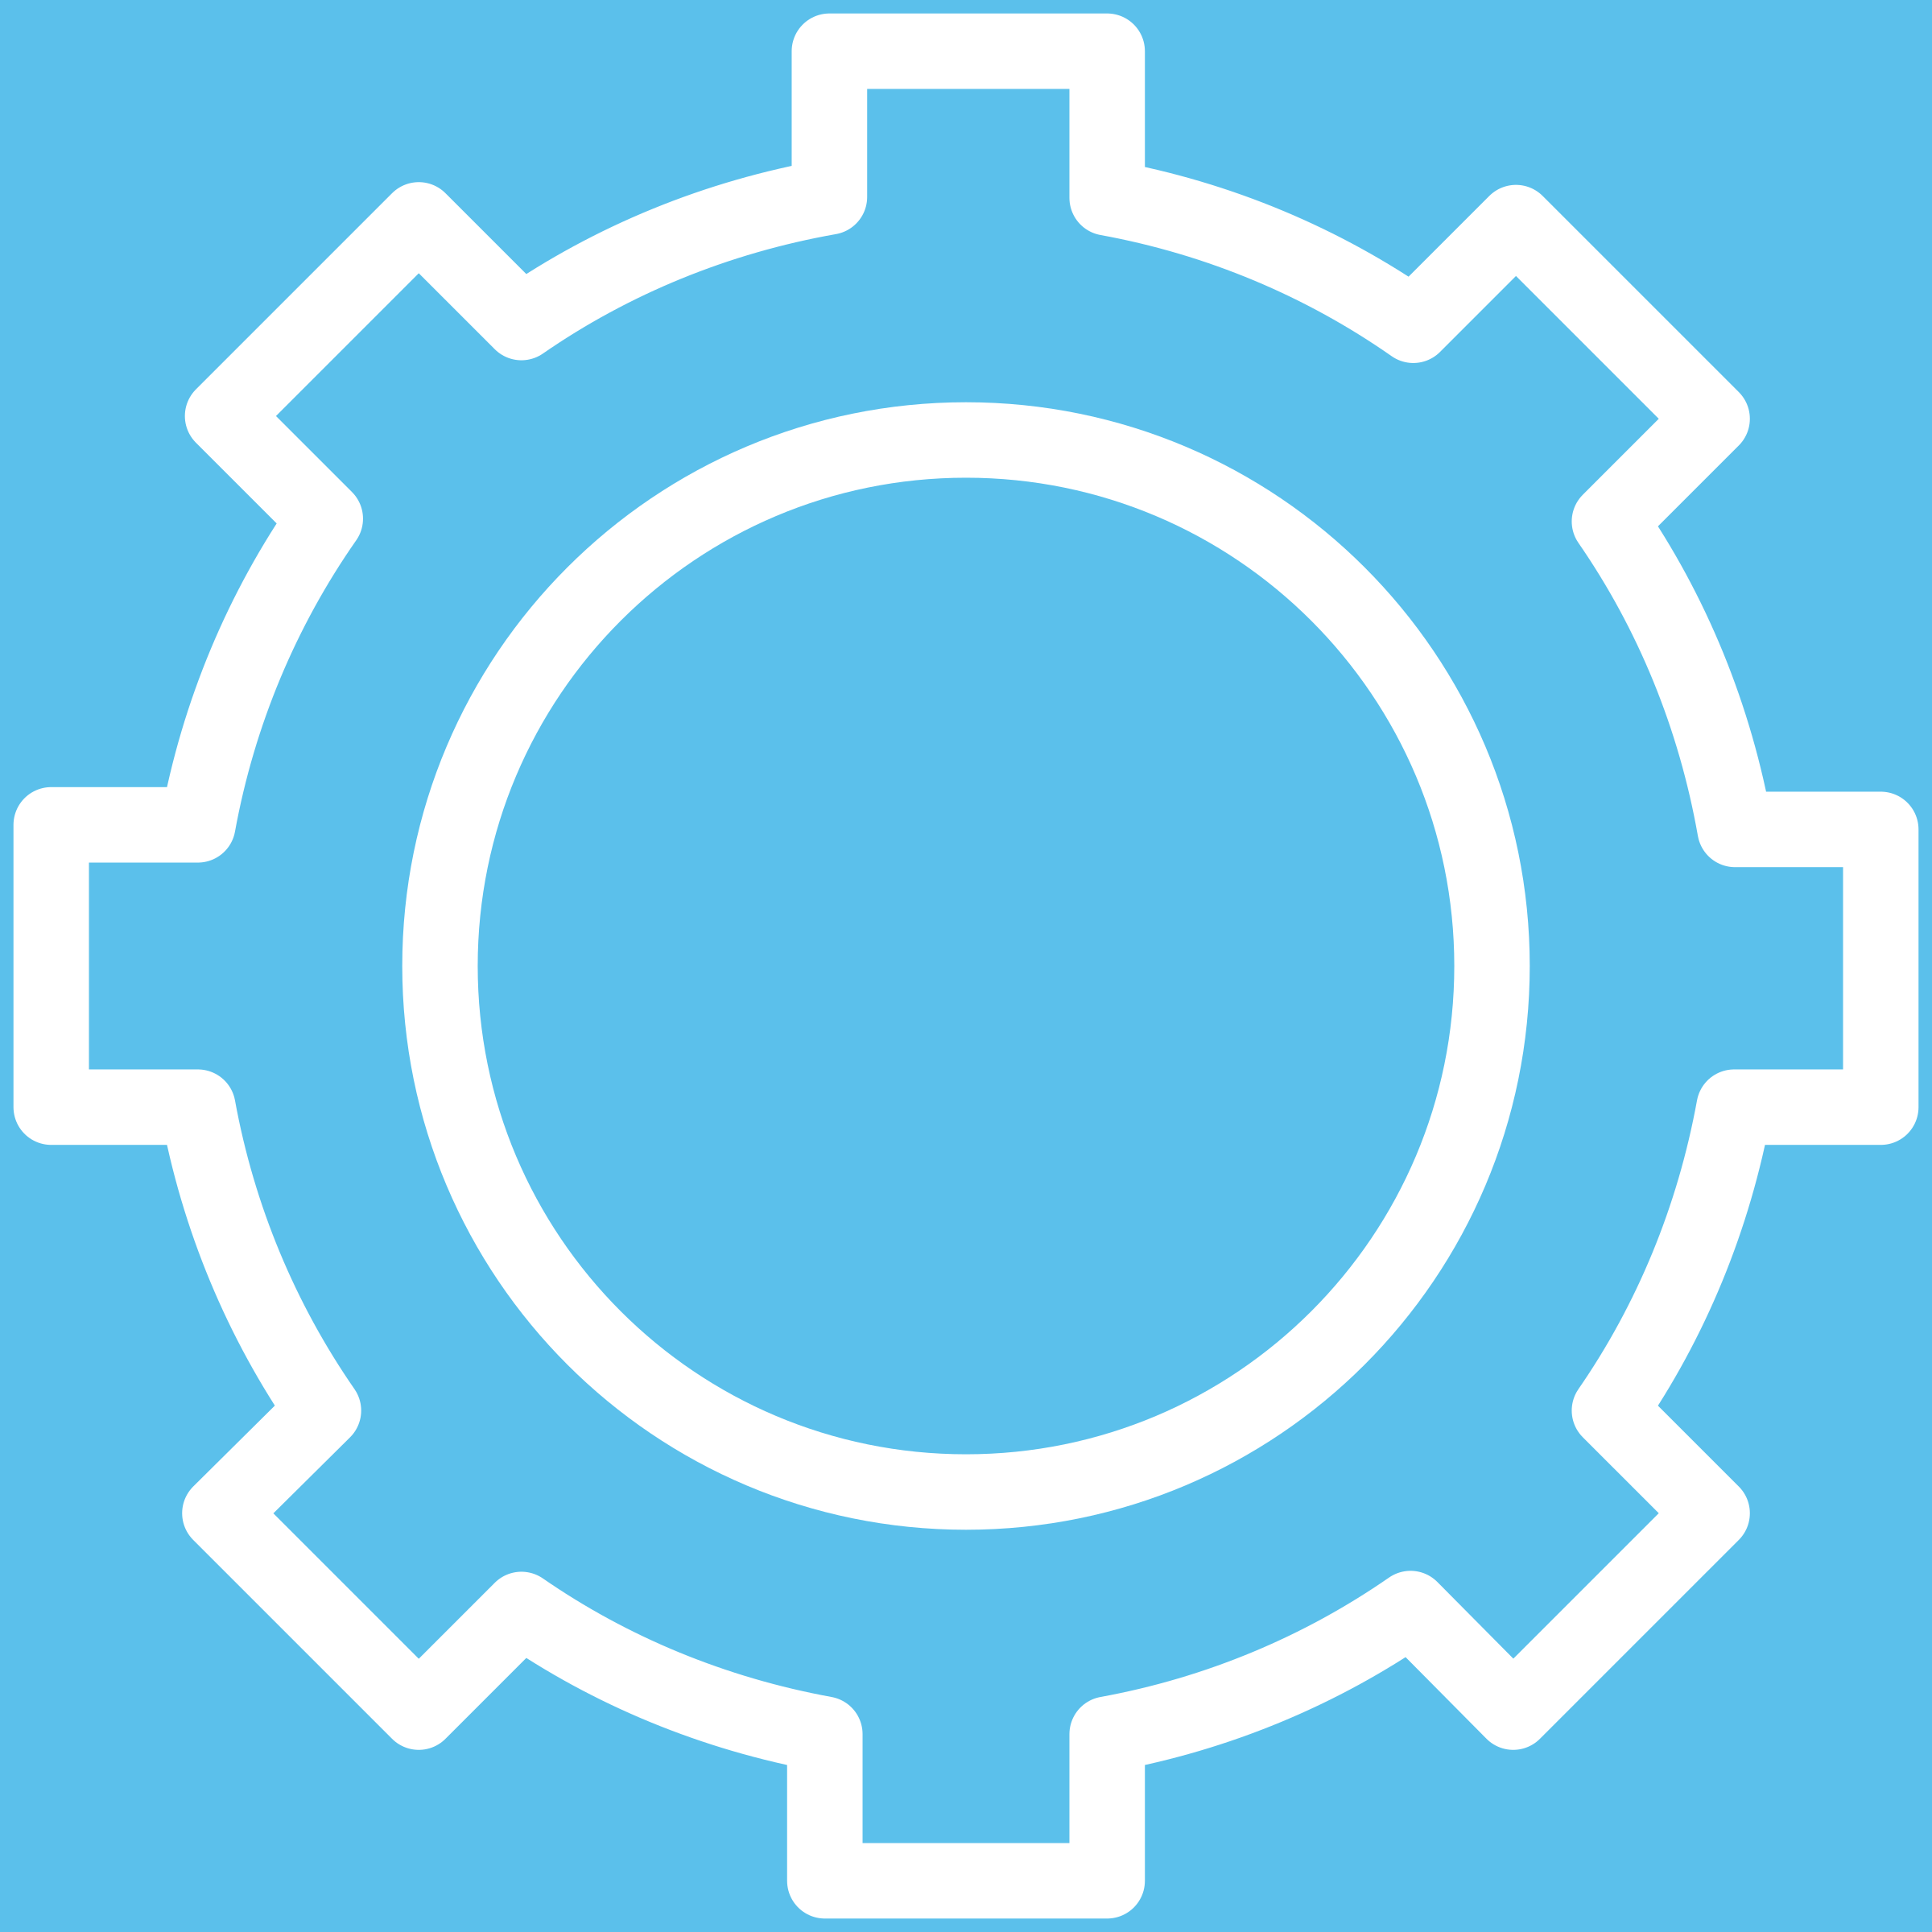 Settings icon by thewizardplusplus